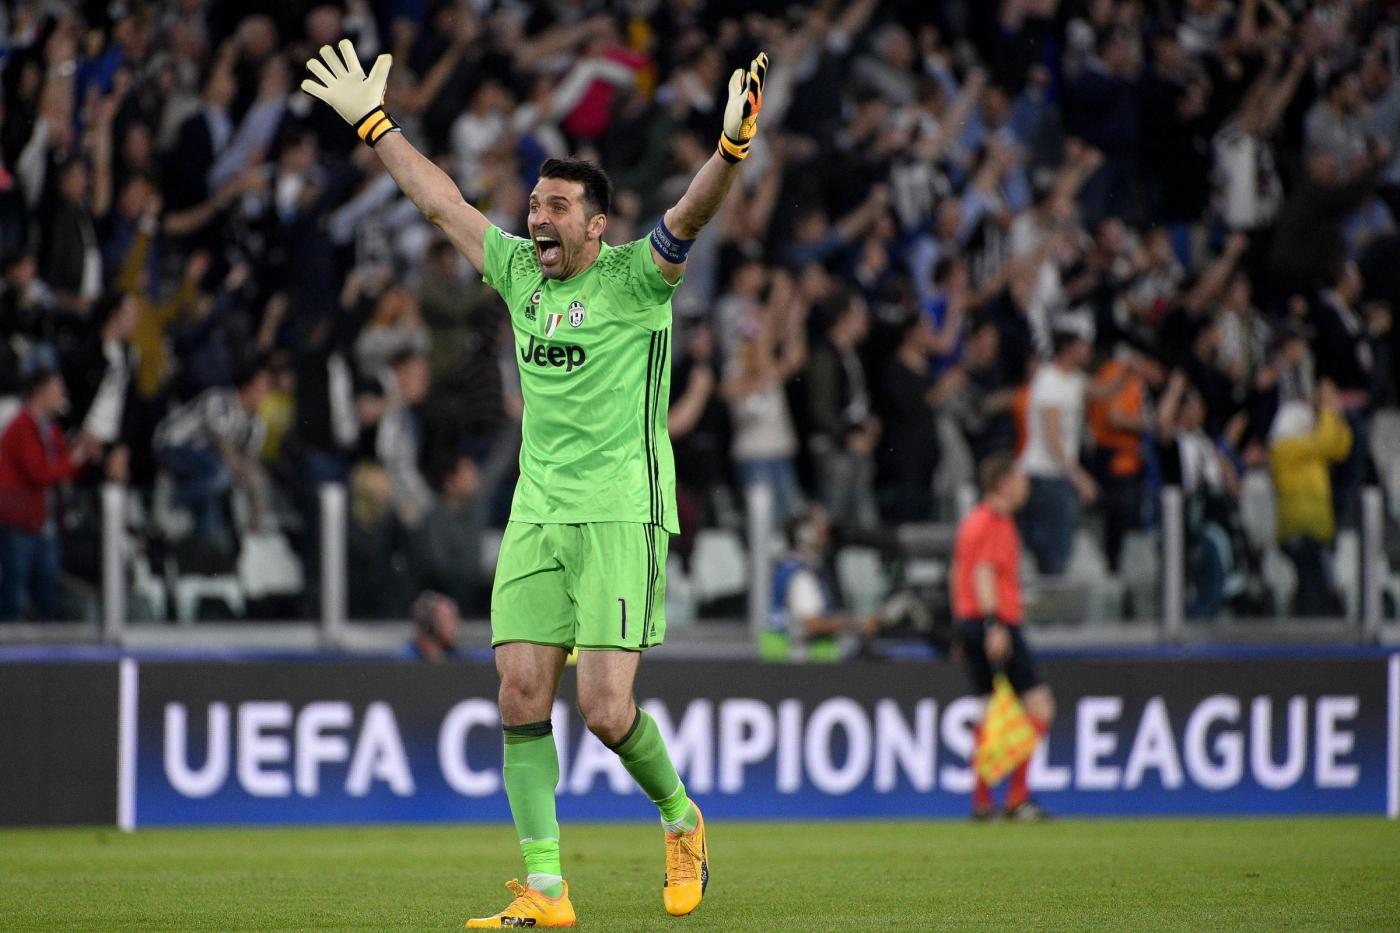 #JuventusRealMadrid - Buffon: